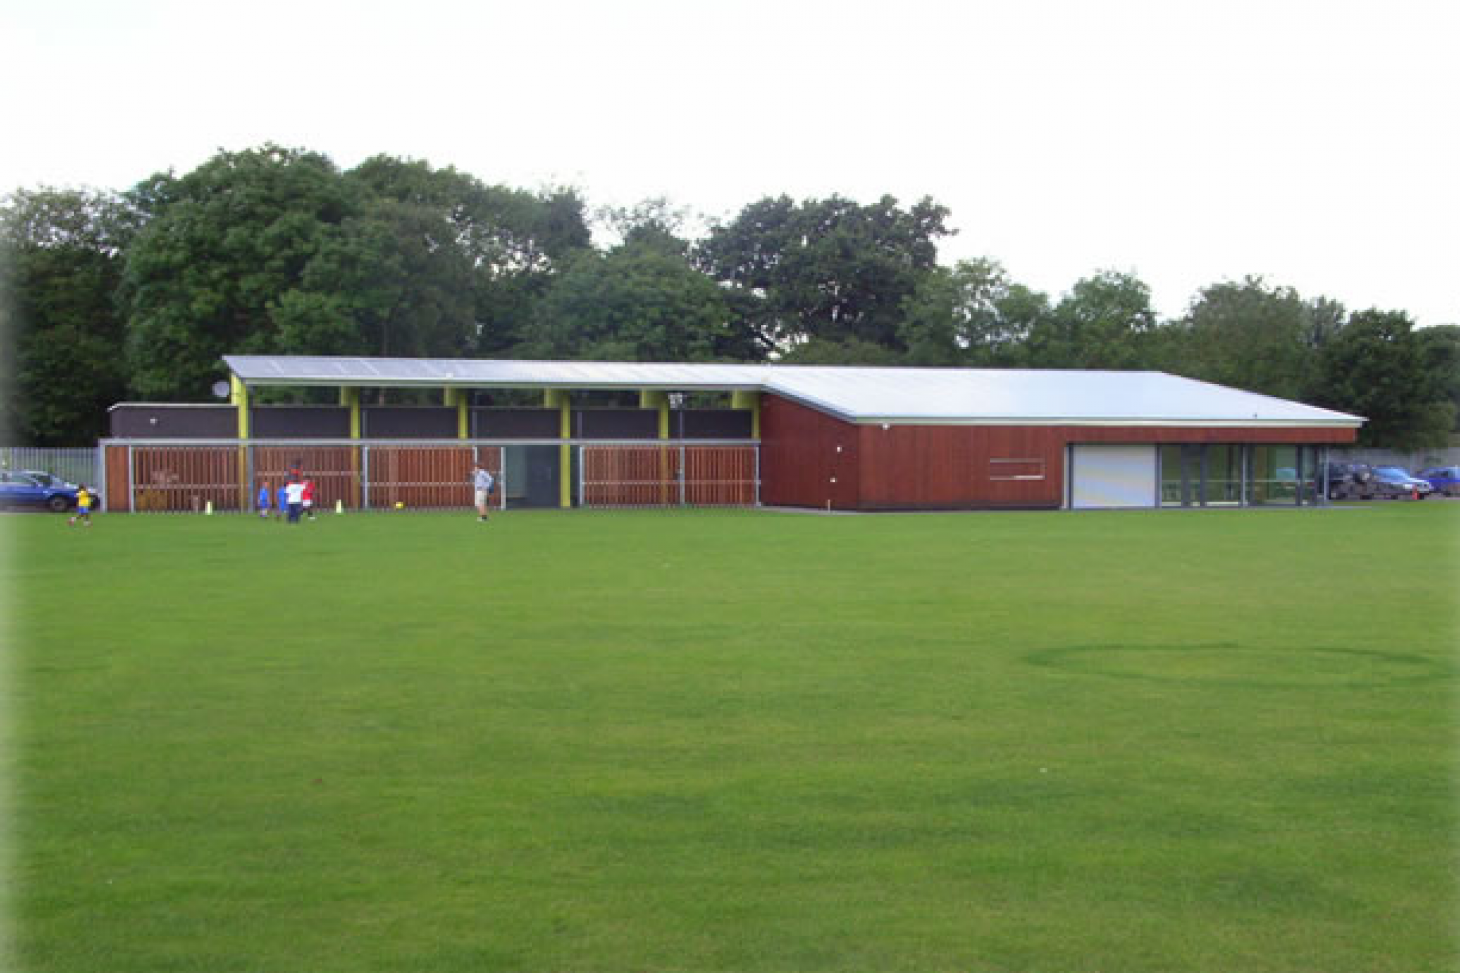 Ten Em Bee Sports Development Centre Full size | Grass cricket facilities